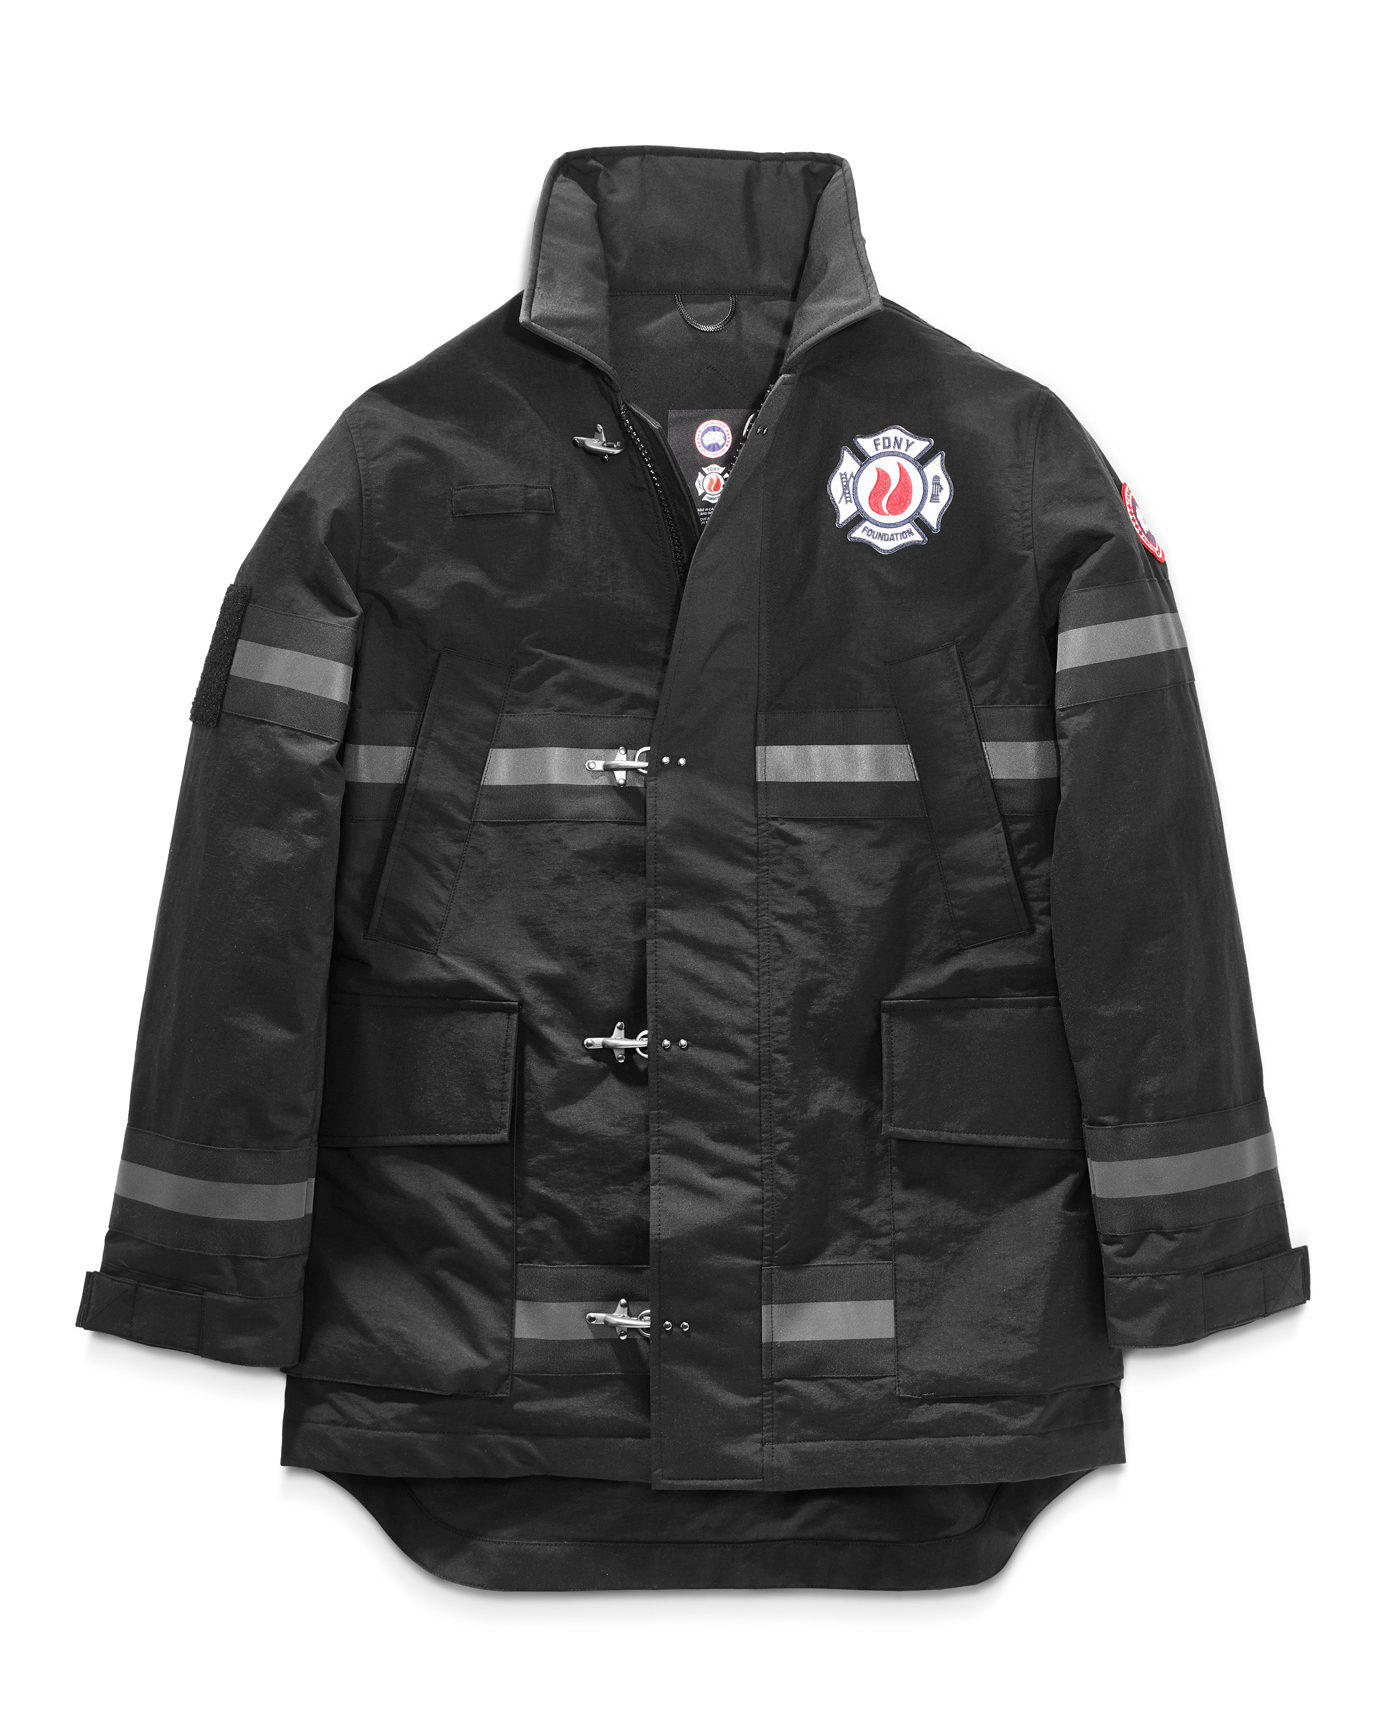 Canada Goose x FDNY – The Bravest Coat White Background